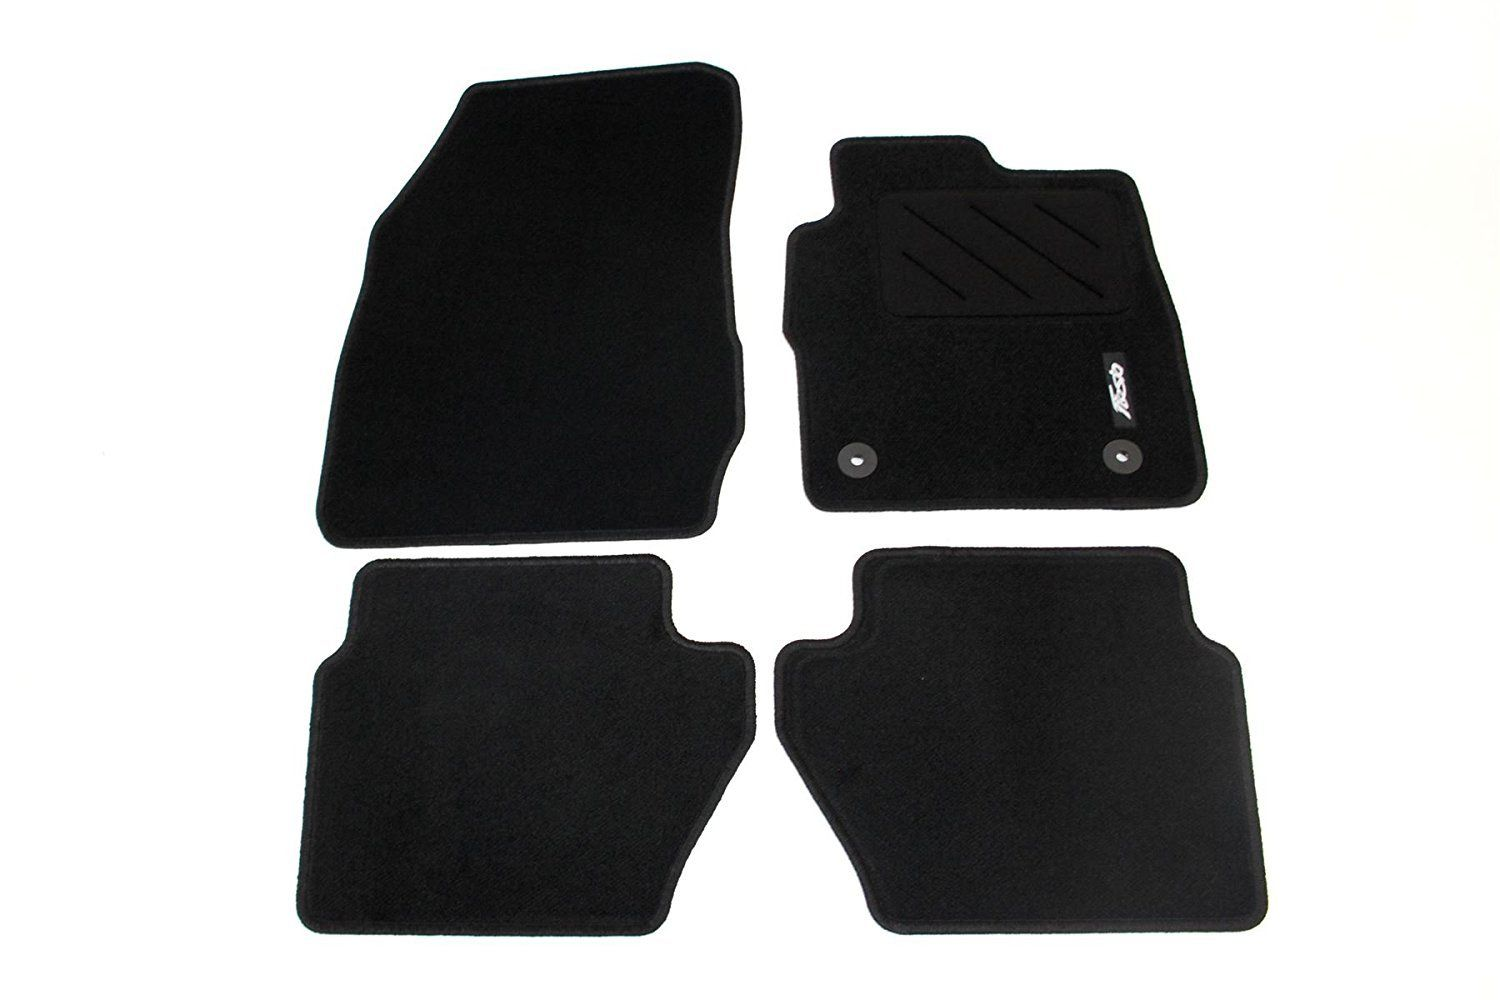 Ford Fiesta Front And Rear Carpet Mat Set 2012 Onwards More Info Could Be Found At The Image Url This Is An Affiliate Li Fiesta Cars Ford Fiesta Car Mats